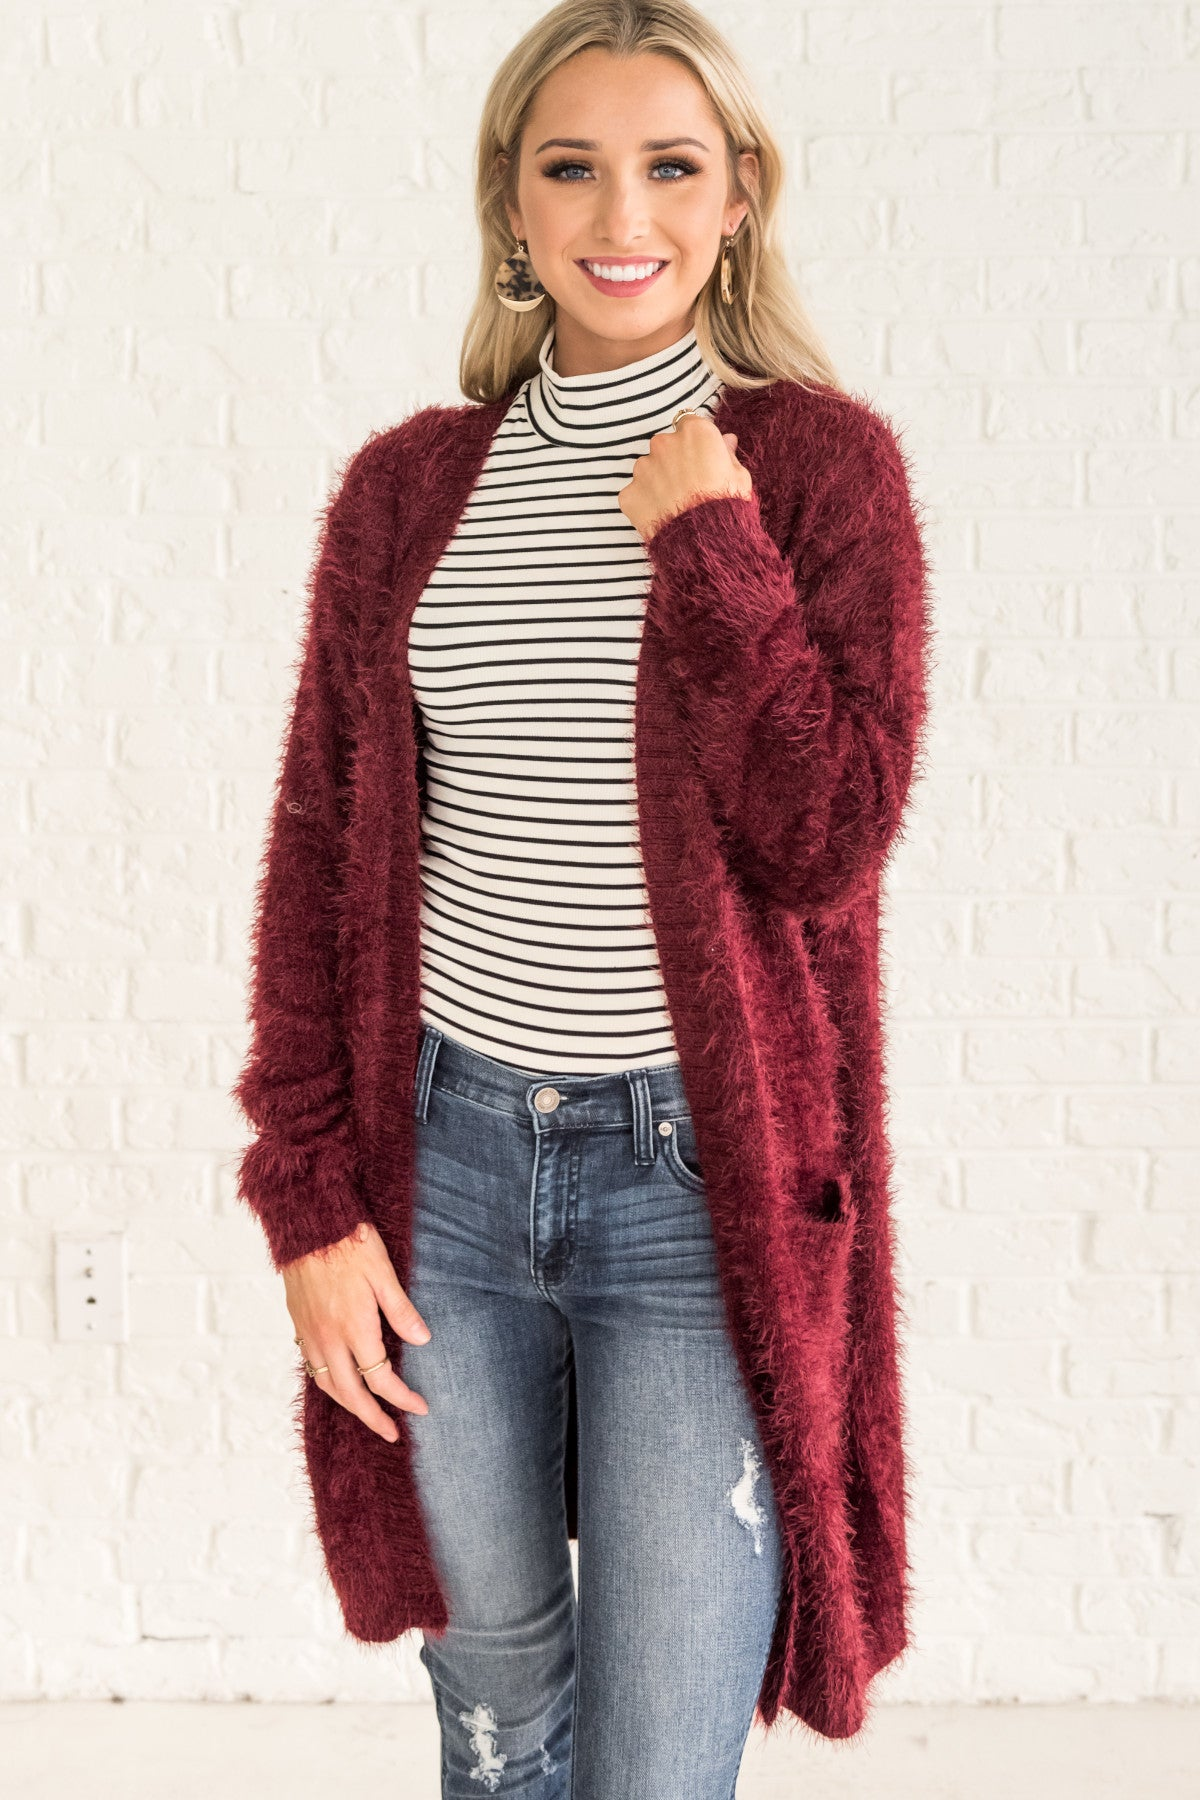 c47eb4b0a3 Burgundy Red Fuzzy Cardigans for Women